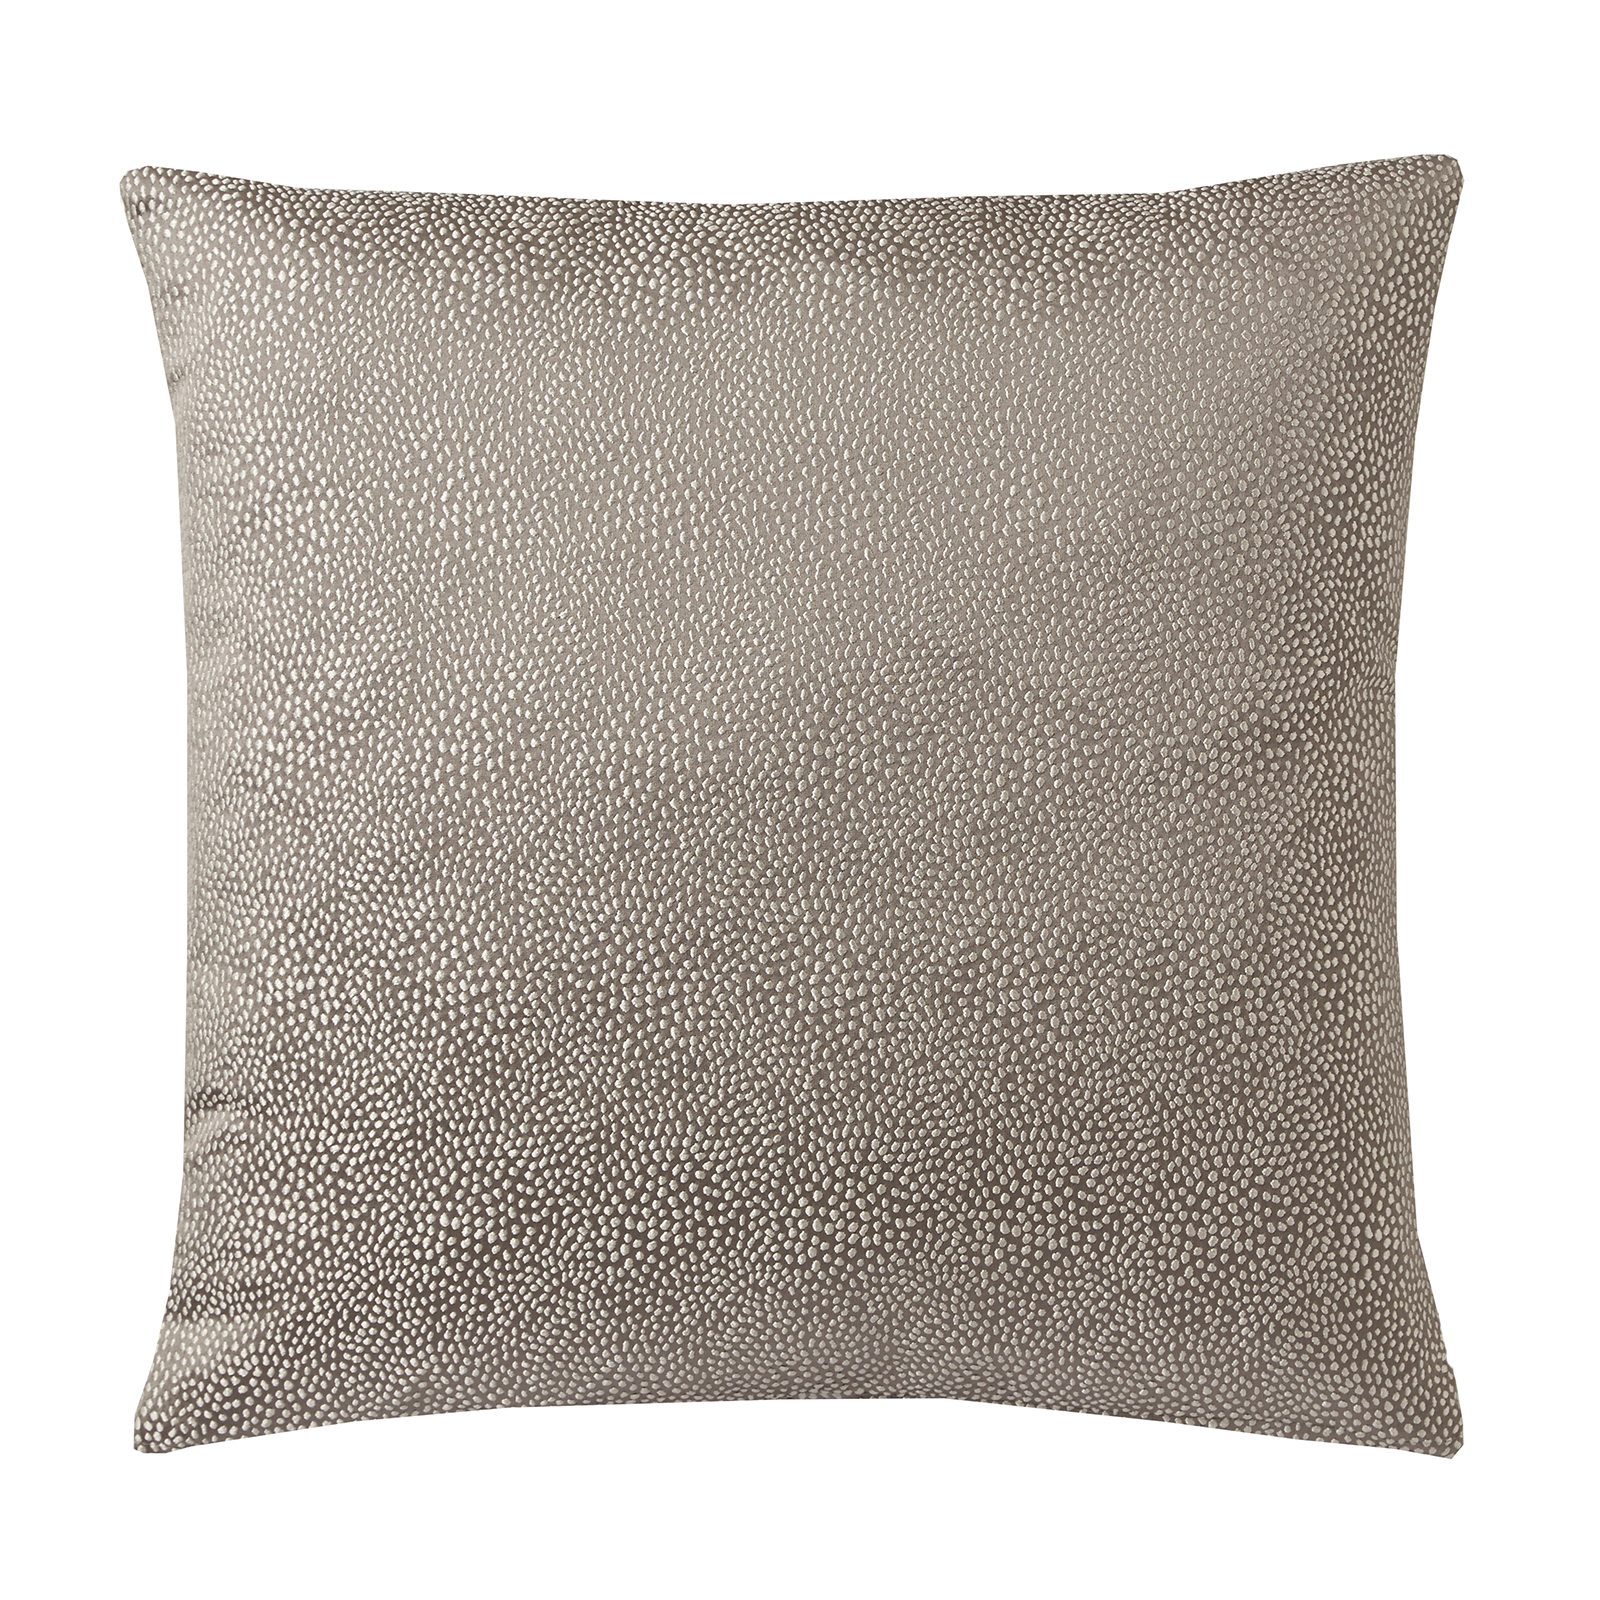 Blean Plain  Cushion